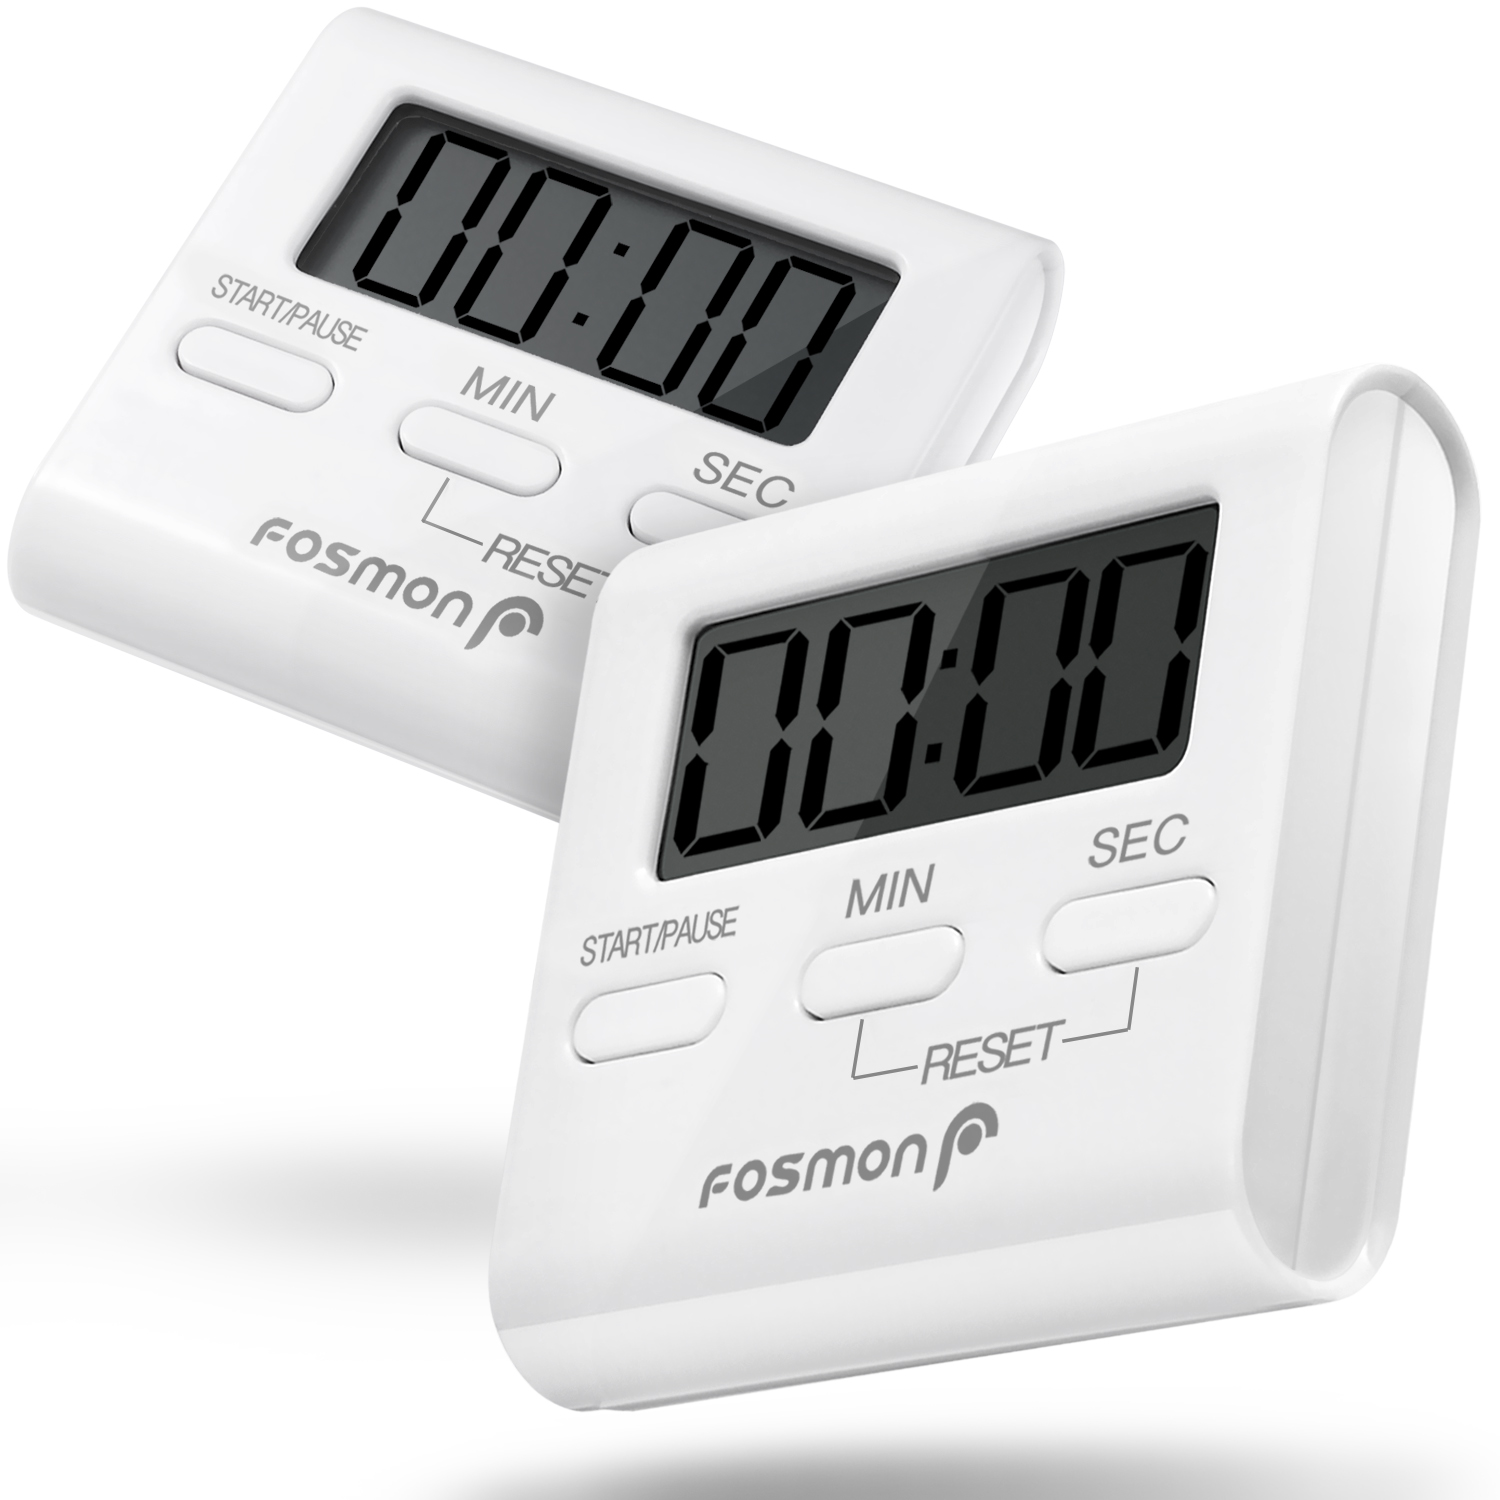 Digital Kitchen Timer (2 Pack), Fosmon Digital Display Kitchen Timer Cooking Baking Count Down Up Clock - Big Digits, Loud Alarm, Magnetic Backing, Foldable Stand, Hanging Loop